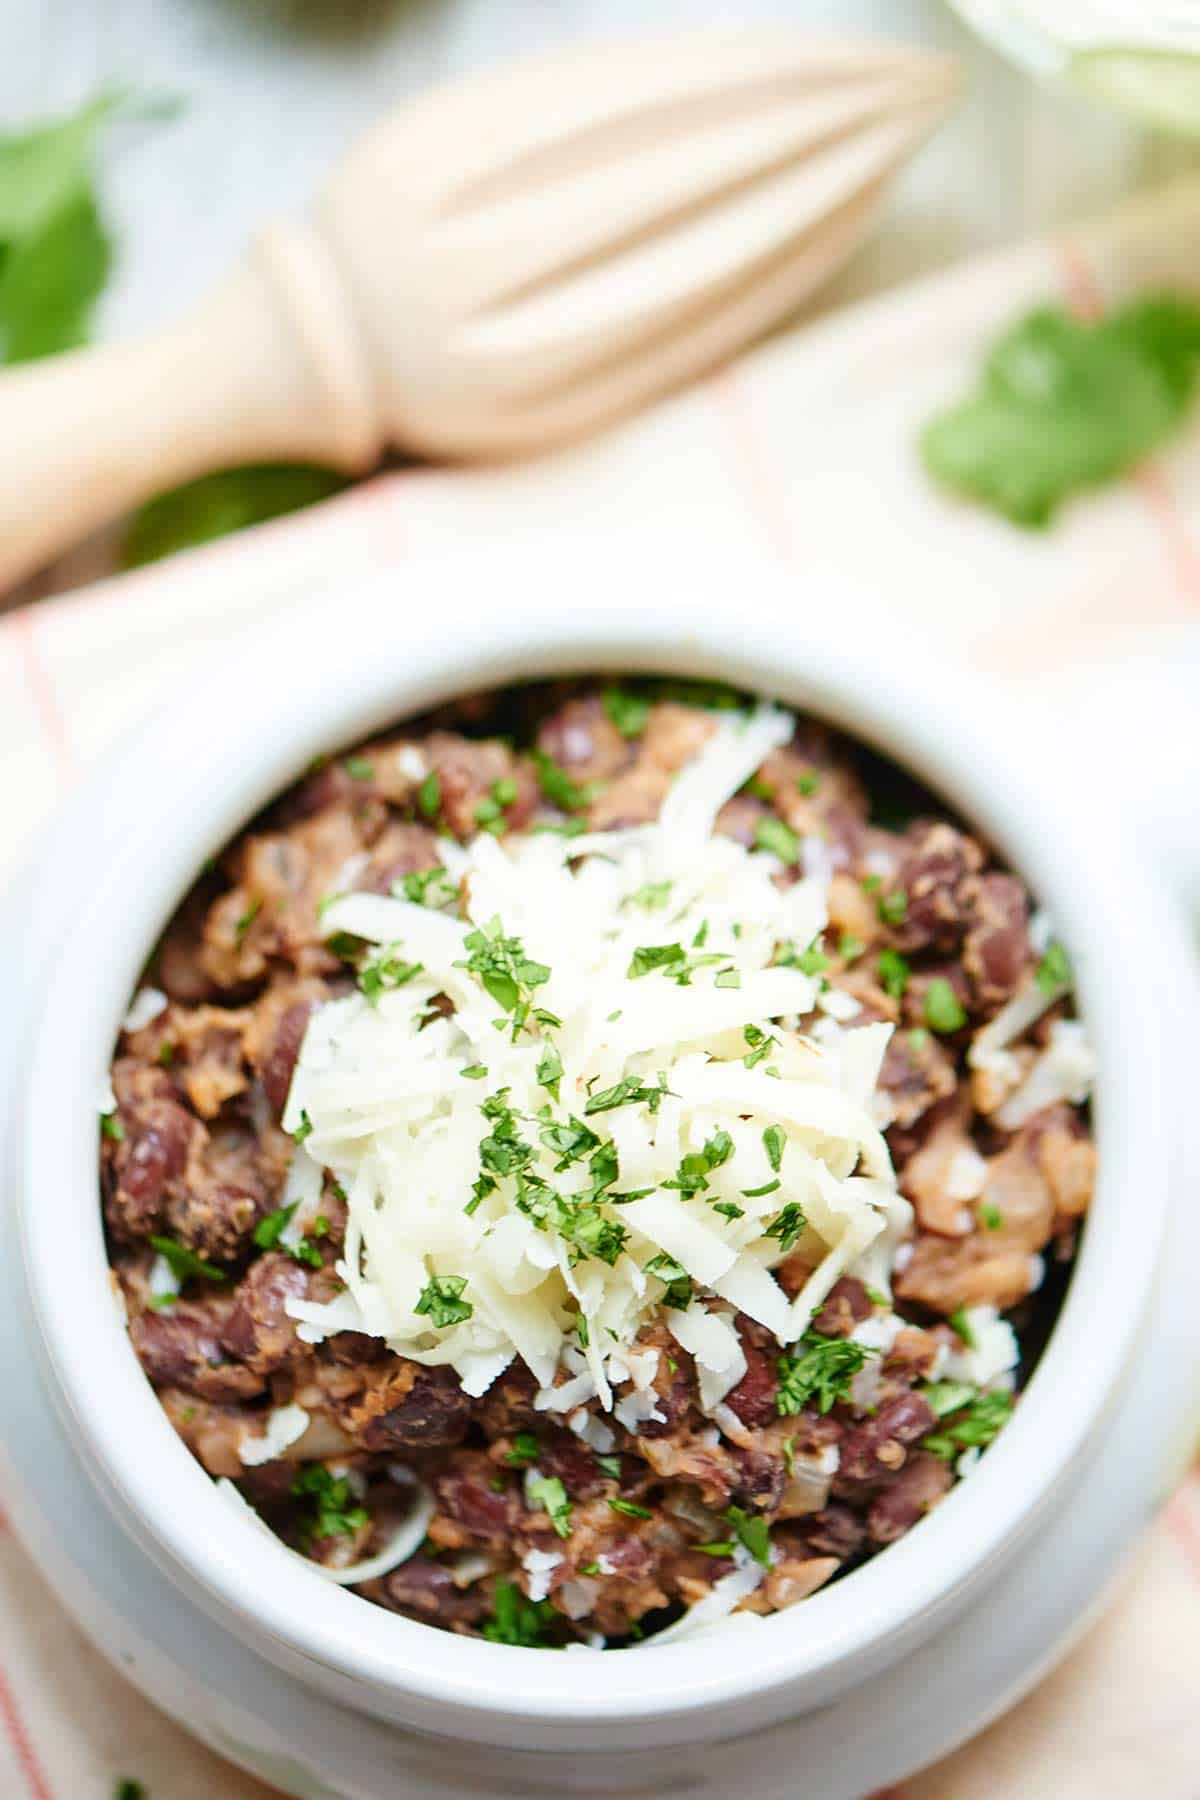 This Easy Black Beans Recipe is gluten free, so tasty, has a short ingredient list, and can easily be made vegetarian or vegan! showmetheyummy.com #glutenfree #blackbeans #vegan